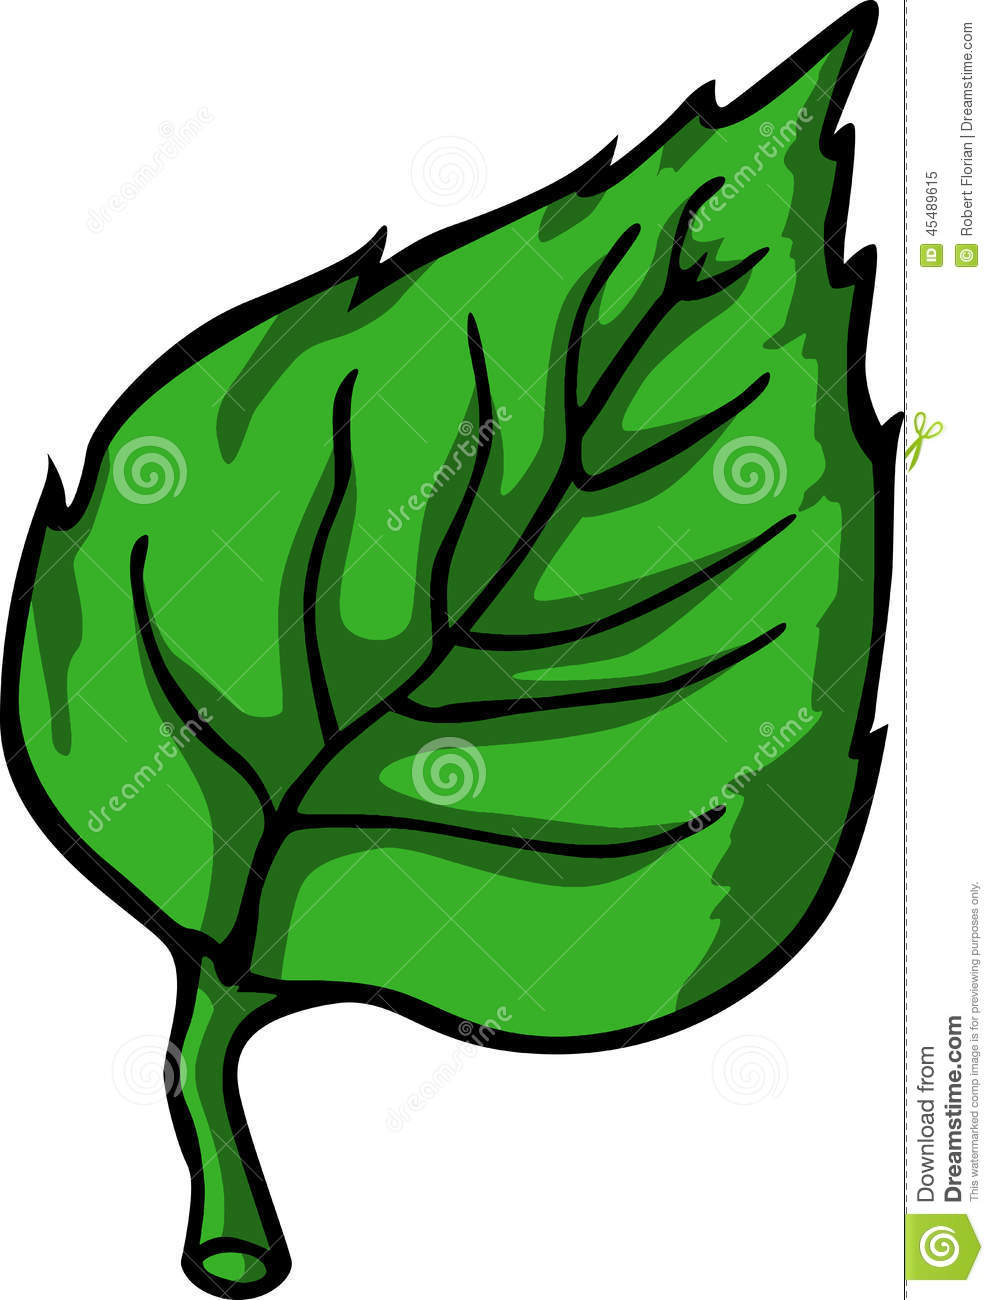 Green Leaf Stock Vector Image 45489615